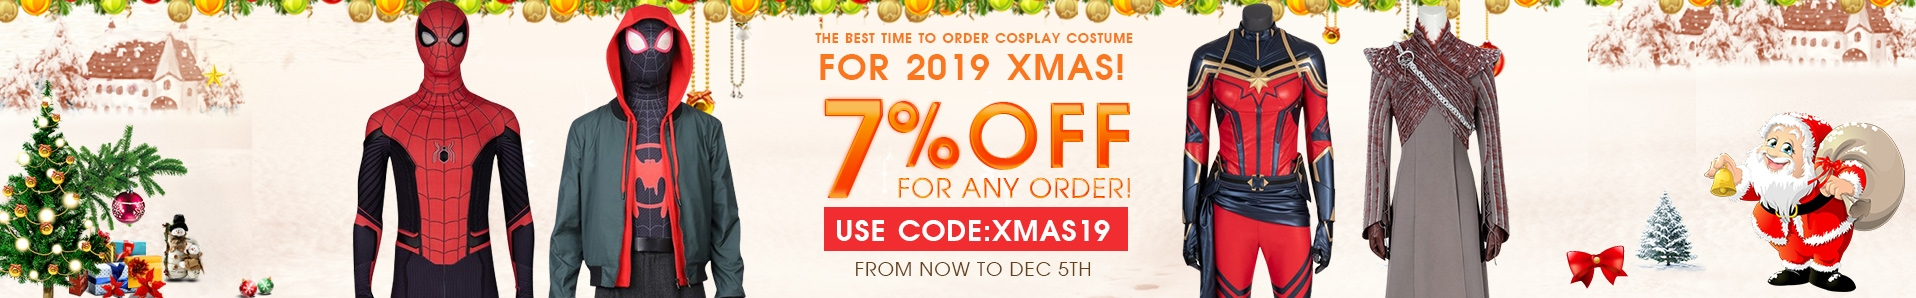 xmas 2019 simcosplay cosplay costumes